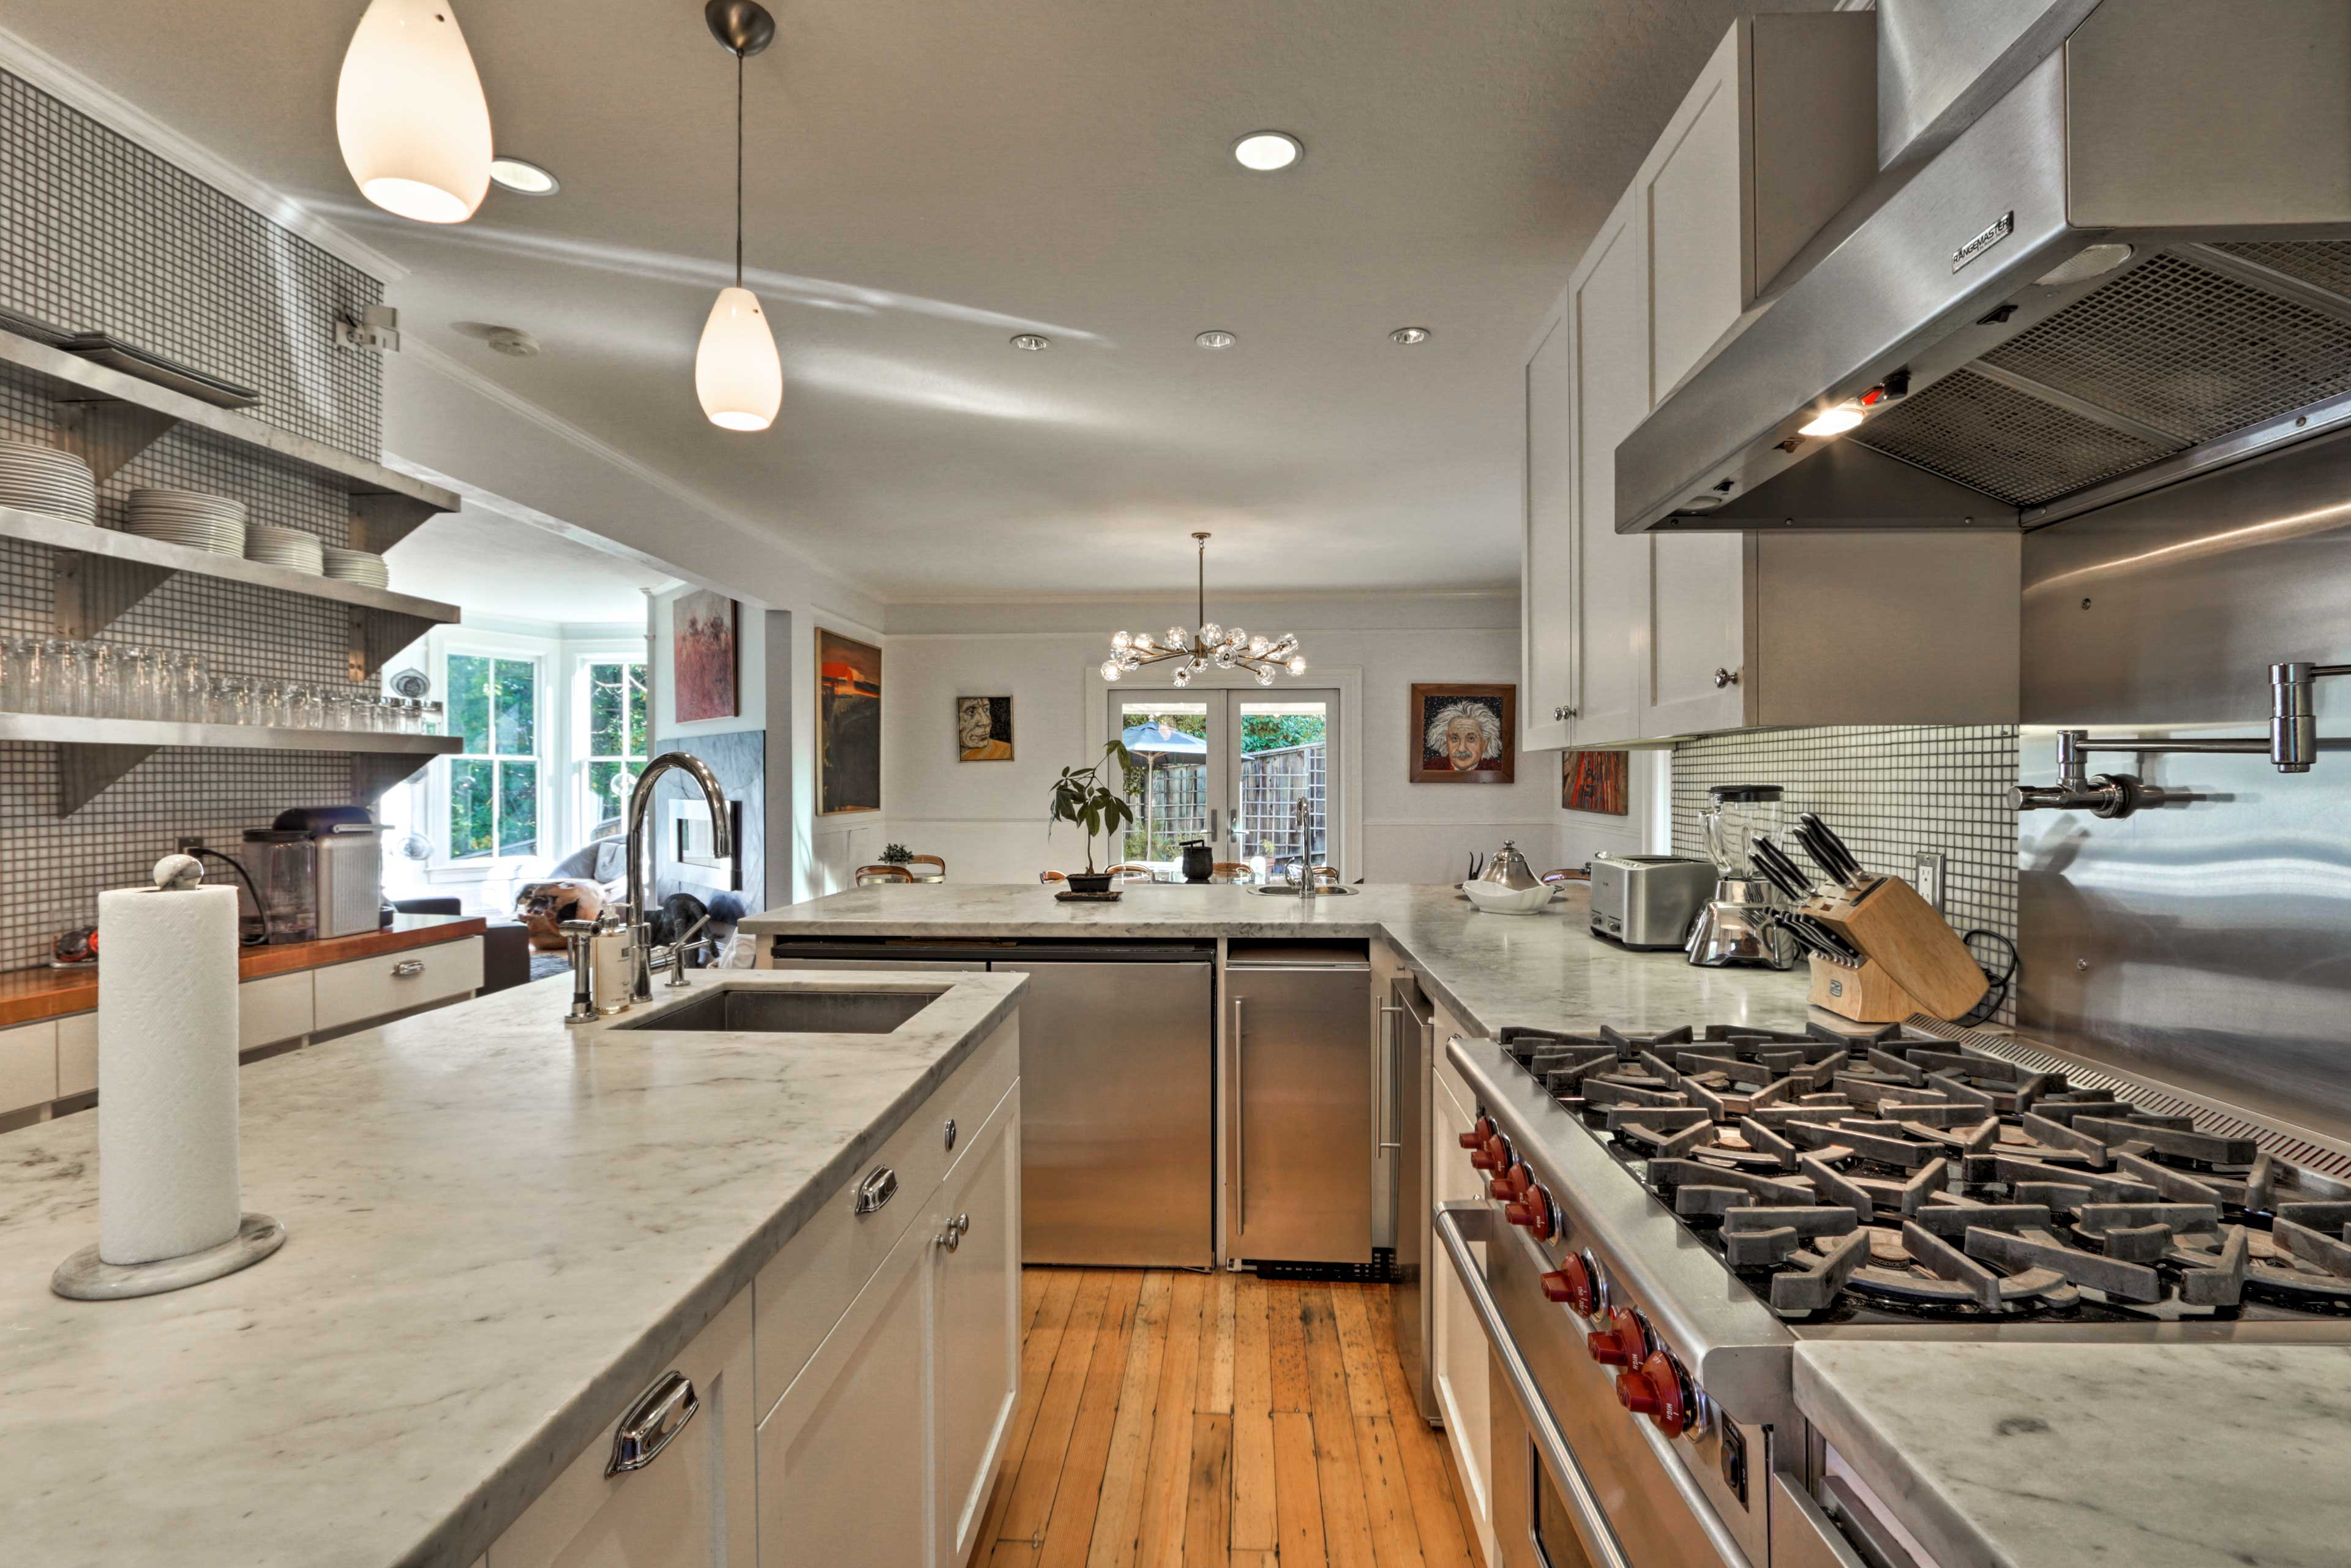 It's truly a cook's dream kitchen!